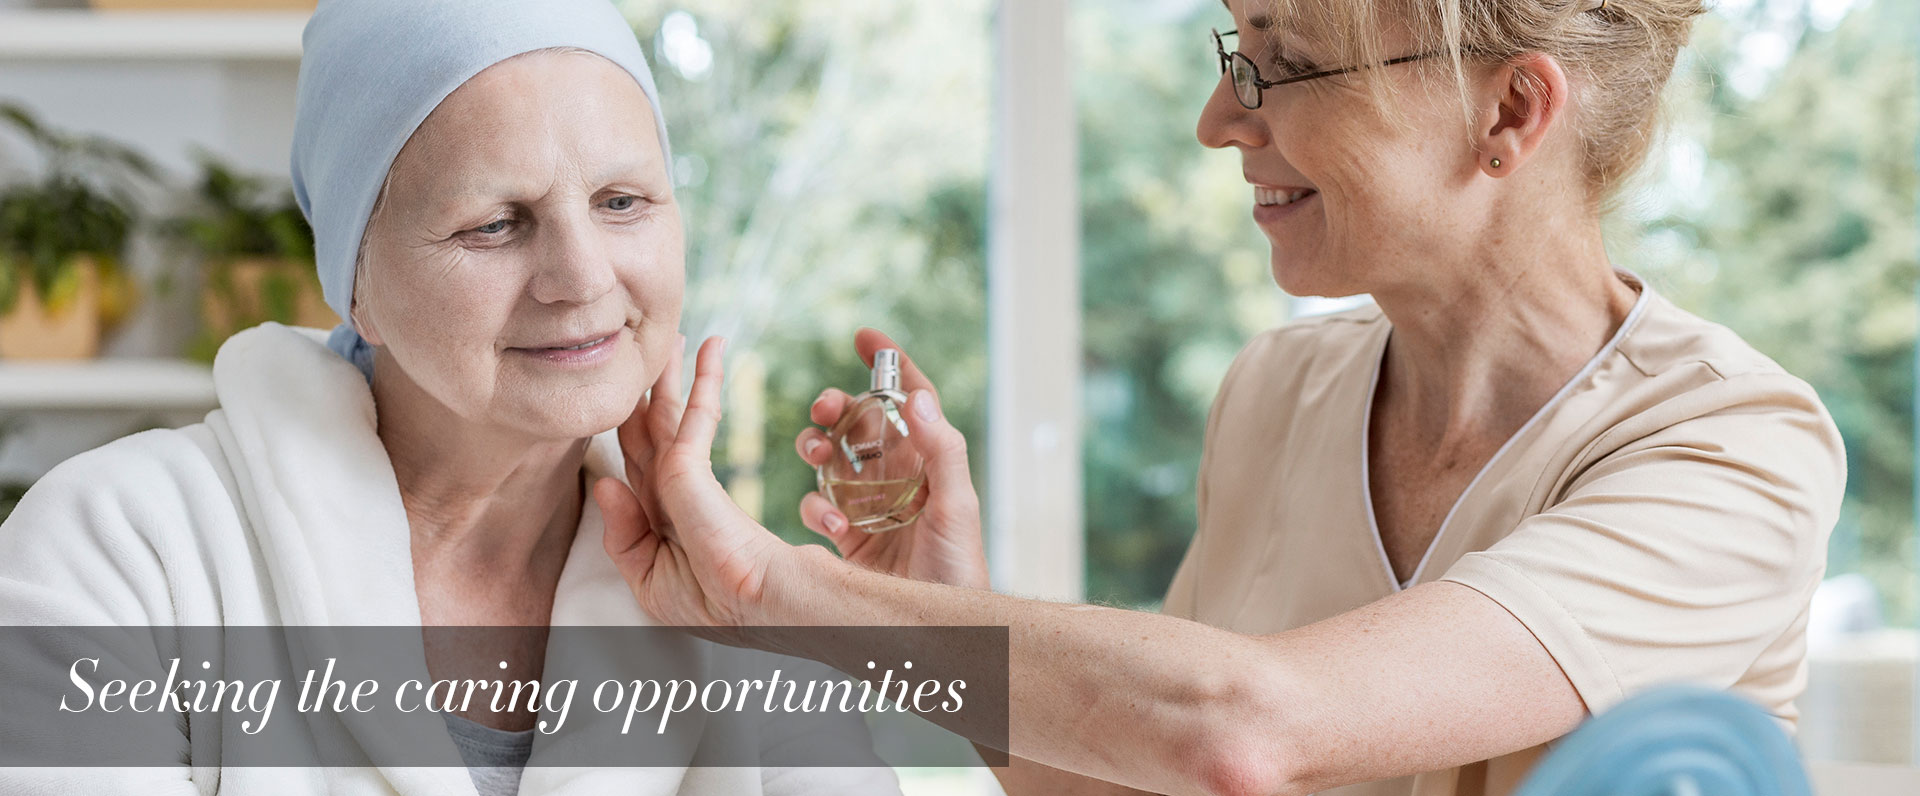 banner-Hospice-Home-Care-volunteering